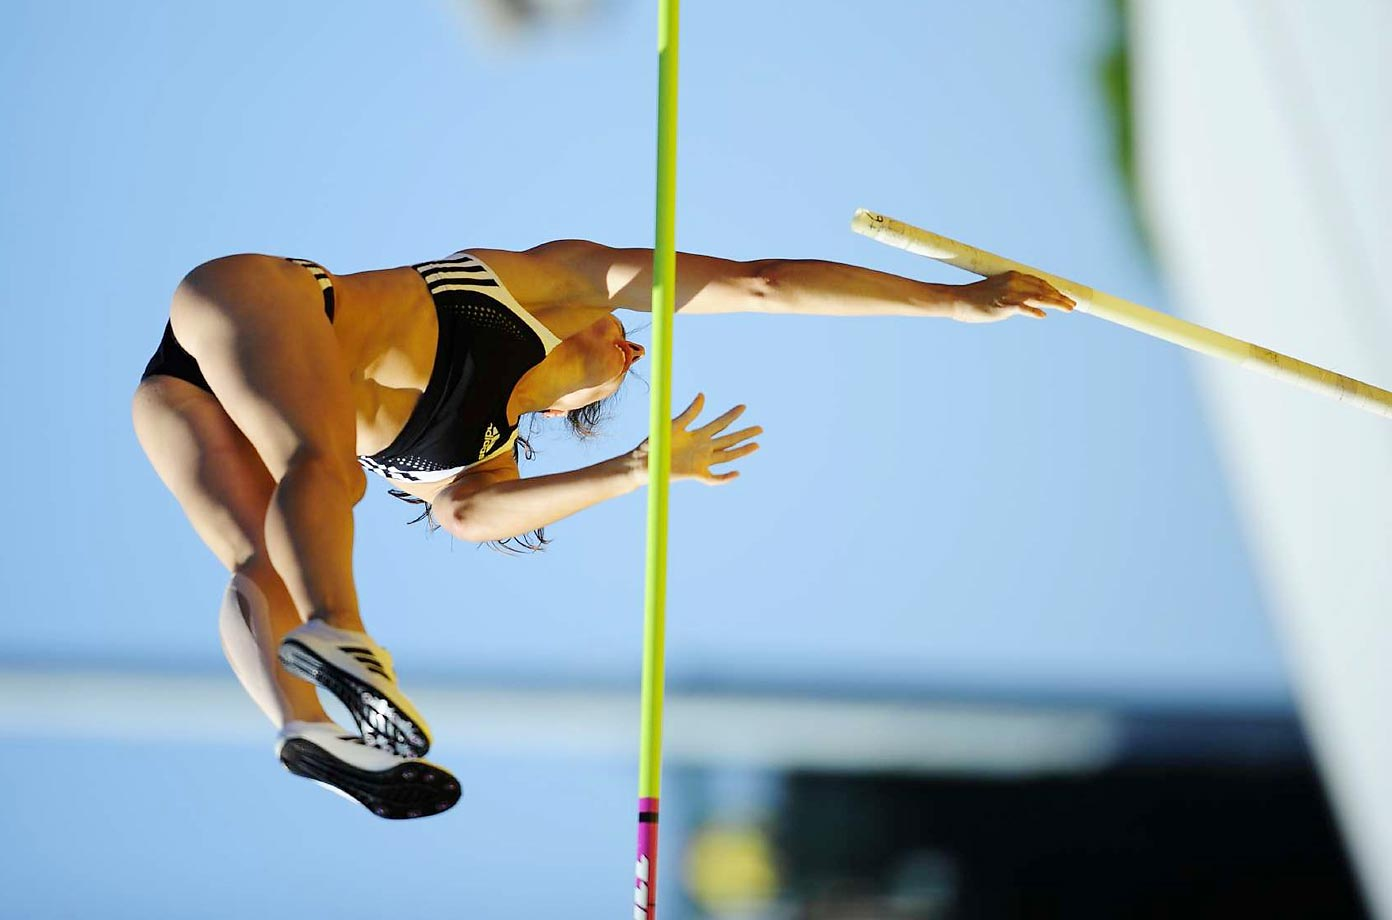 Jennifer Stuczynski in the pole vault final at the 2008 U.S. Team Trials.